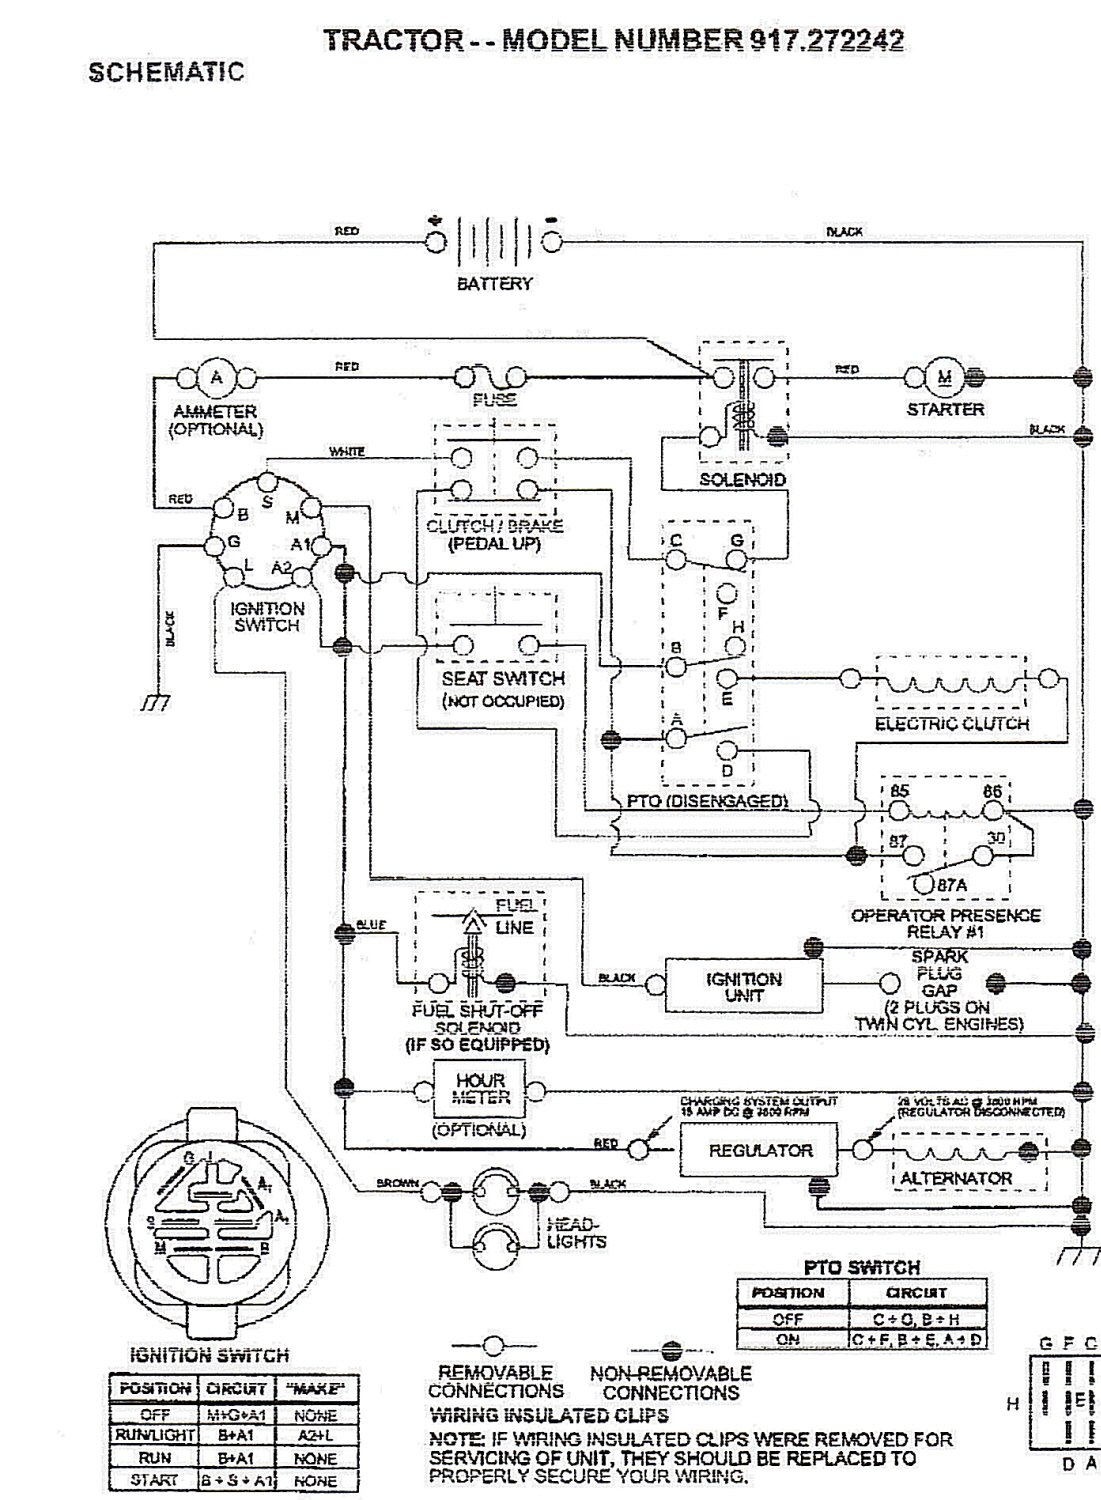 2013 05 25_033810_craftsman_917 272242 have a craftsman ohv 17hp model310707 type 0137 e1 lawn tractor craftsman model 917 wiring diagram at crackthecode.co